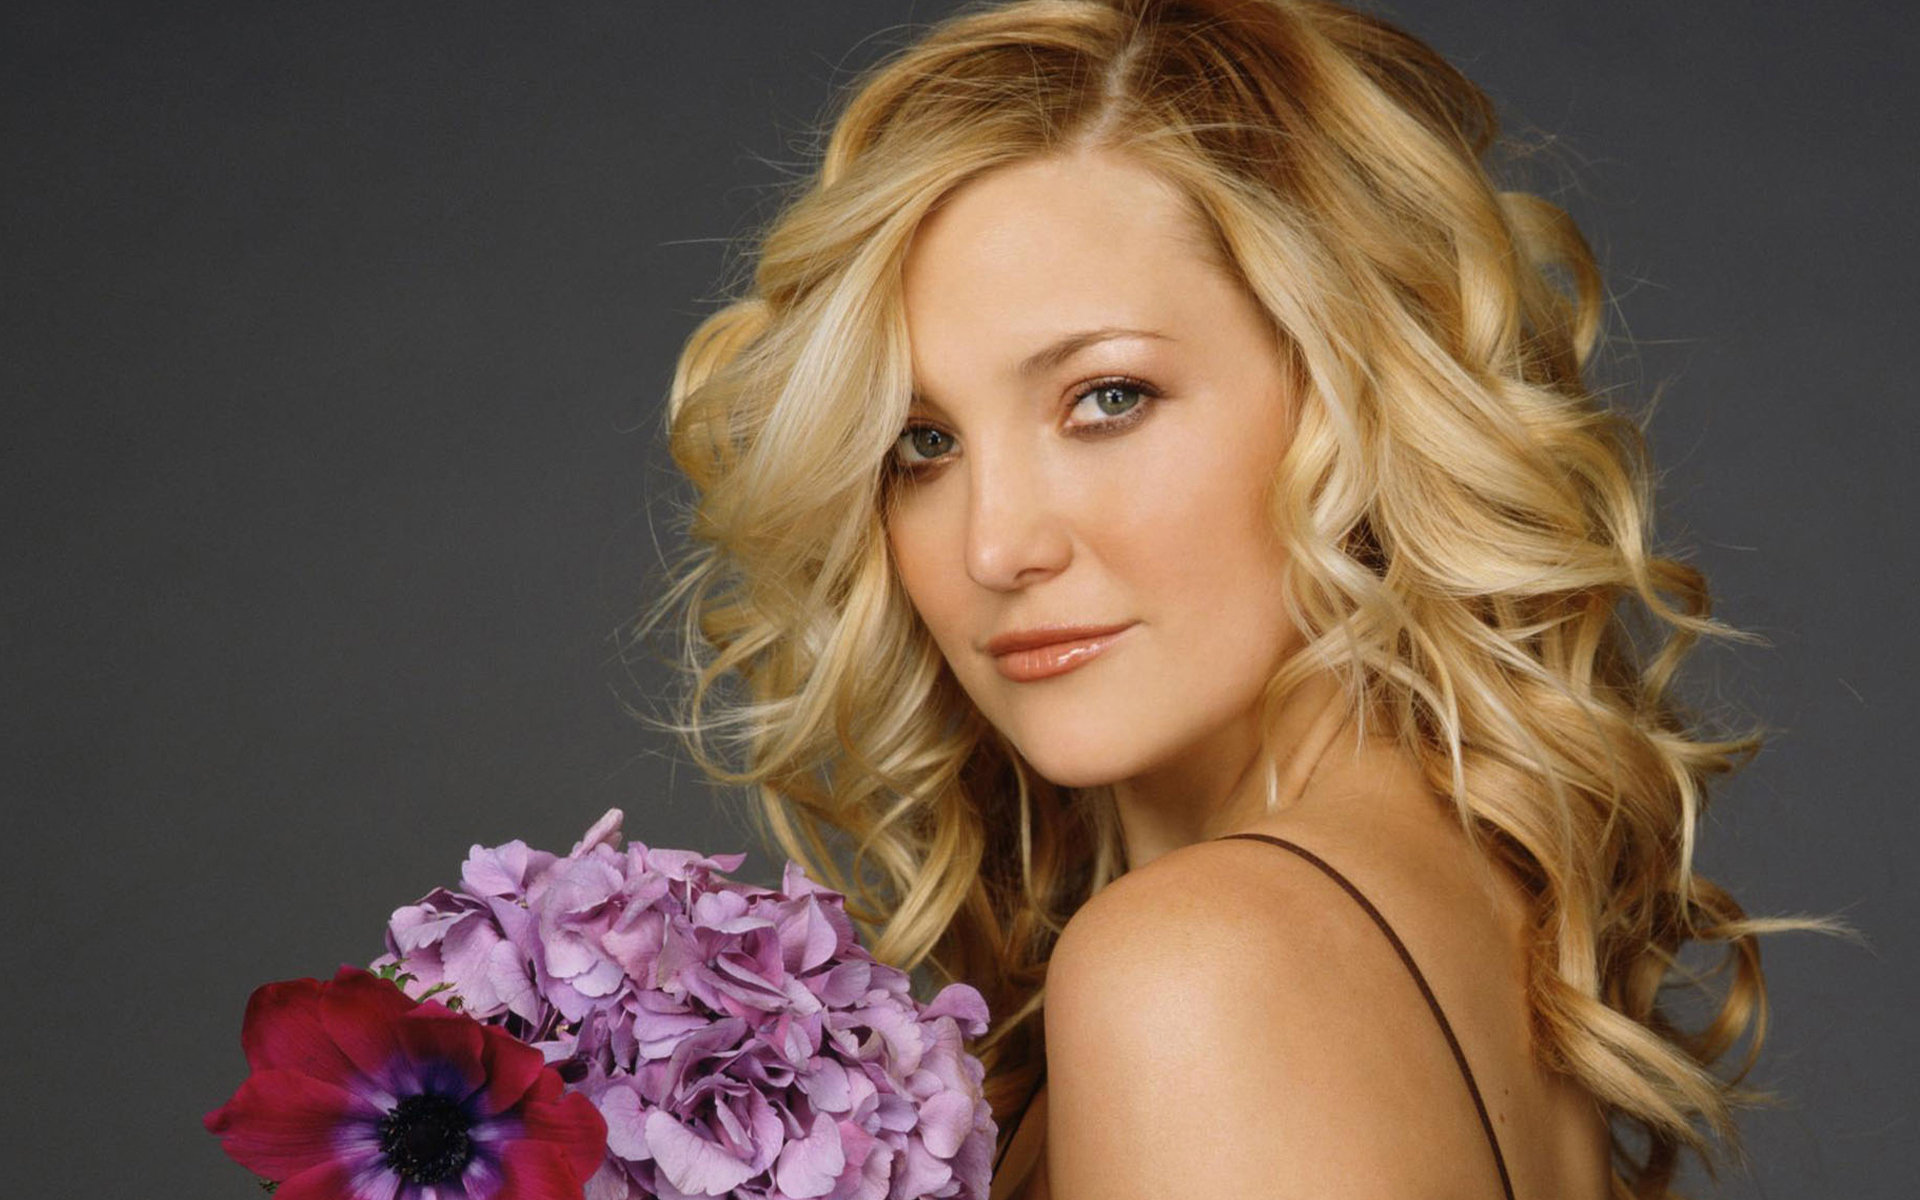 High resolution Kate Hudson hd 1920x1200 background ID:89391 for computer